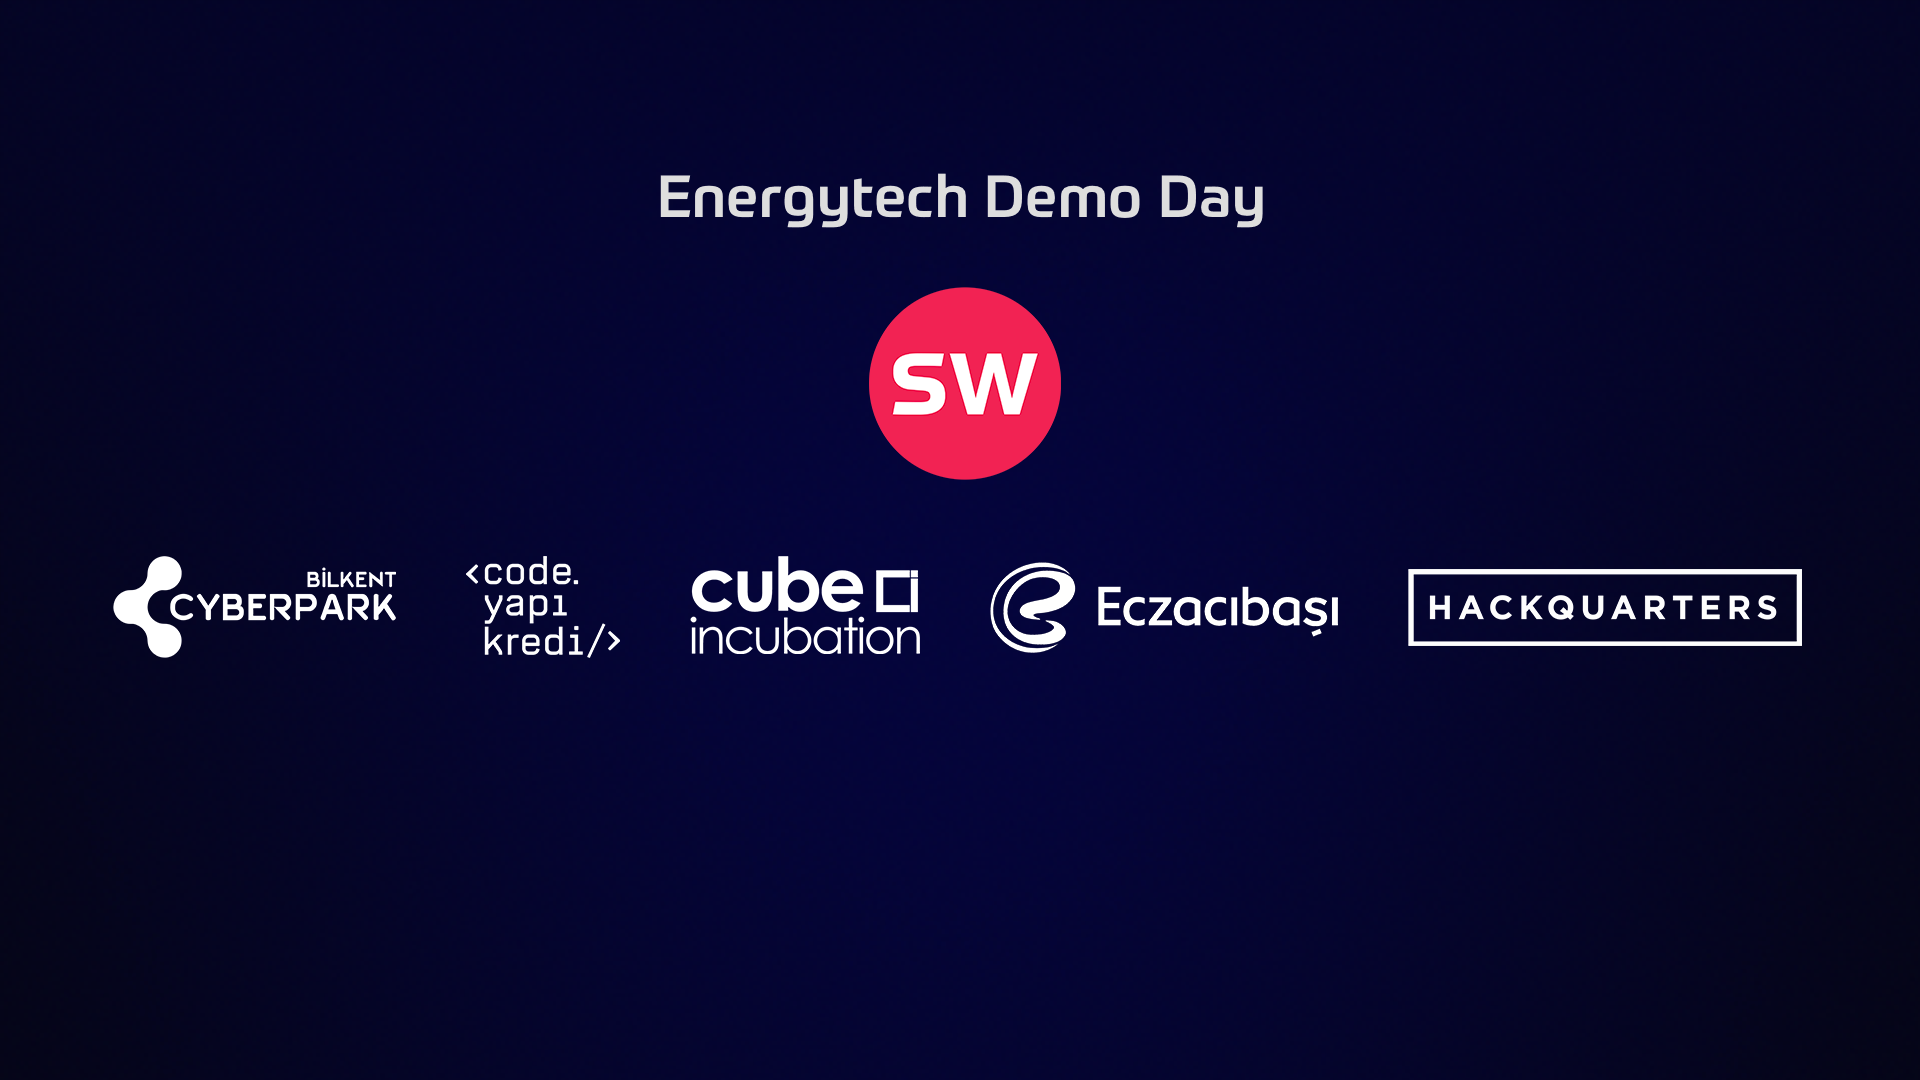 Startups Watch's Demo Day, about Energytech was held on 25 August.